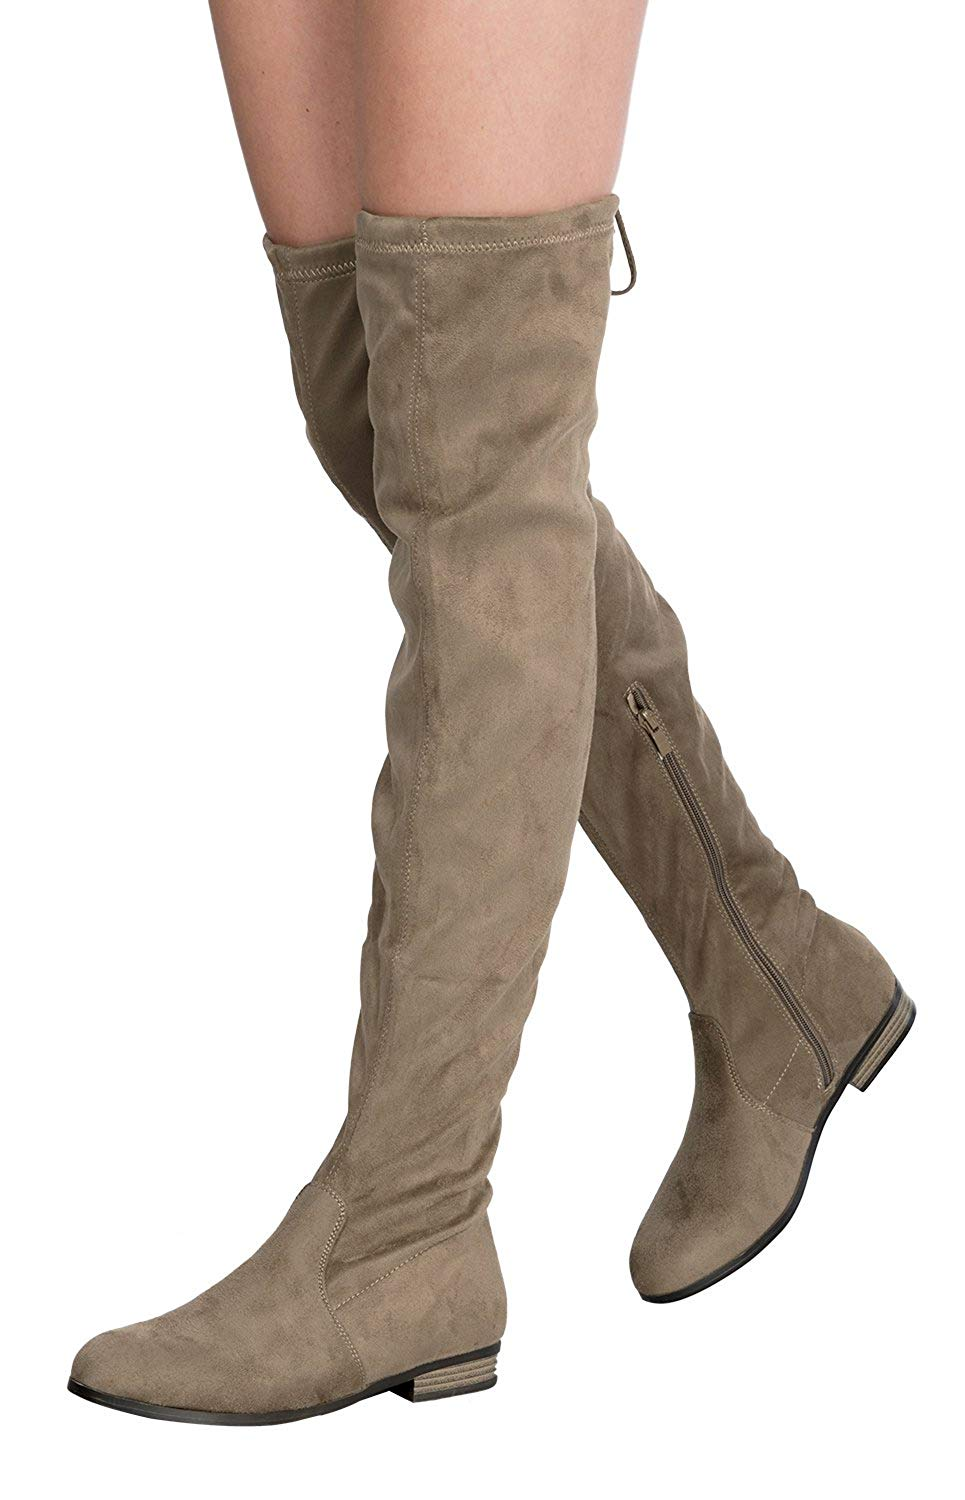 fb1e46df004c Get Quotations · OLIVIA K Women s Sexy Over The Knee Thigh High Faux Suede  Low Heel Boots